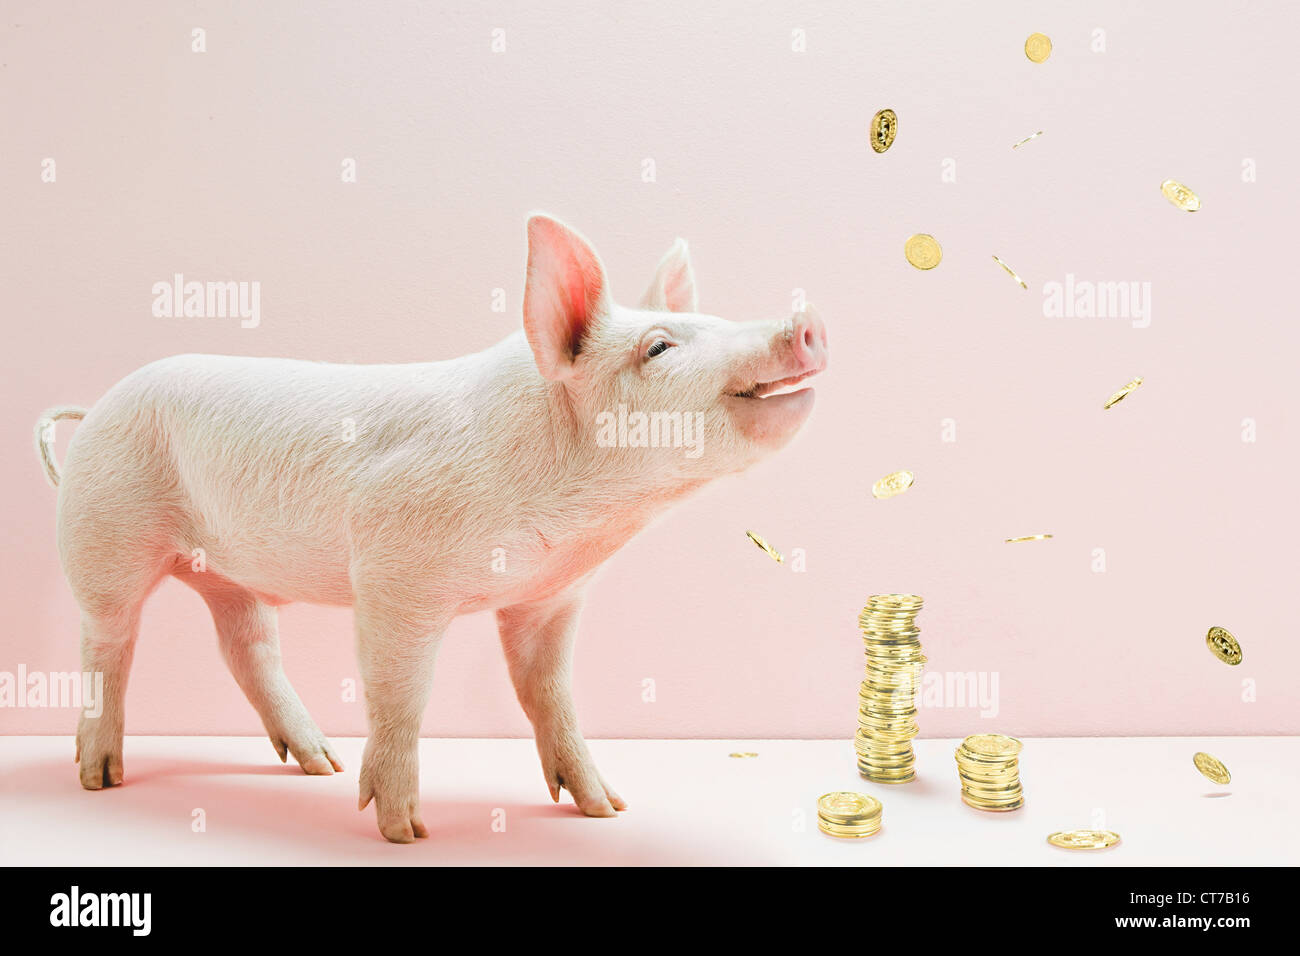 Piglet and falling coins Stock Photo